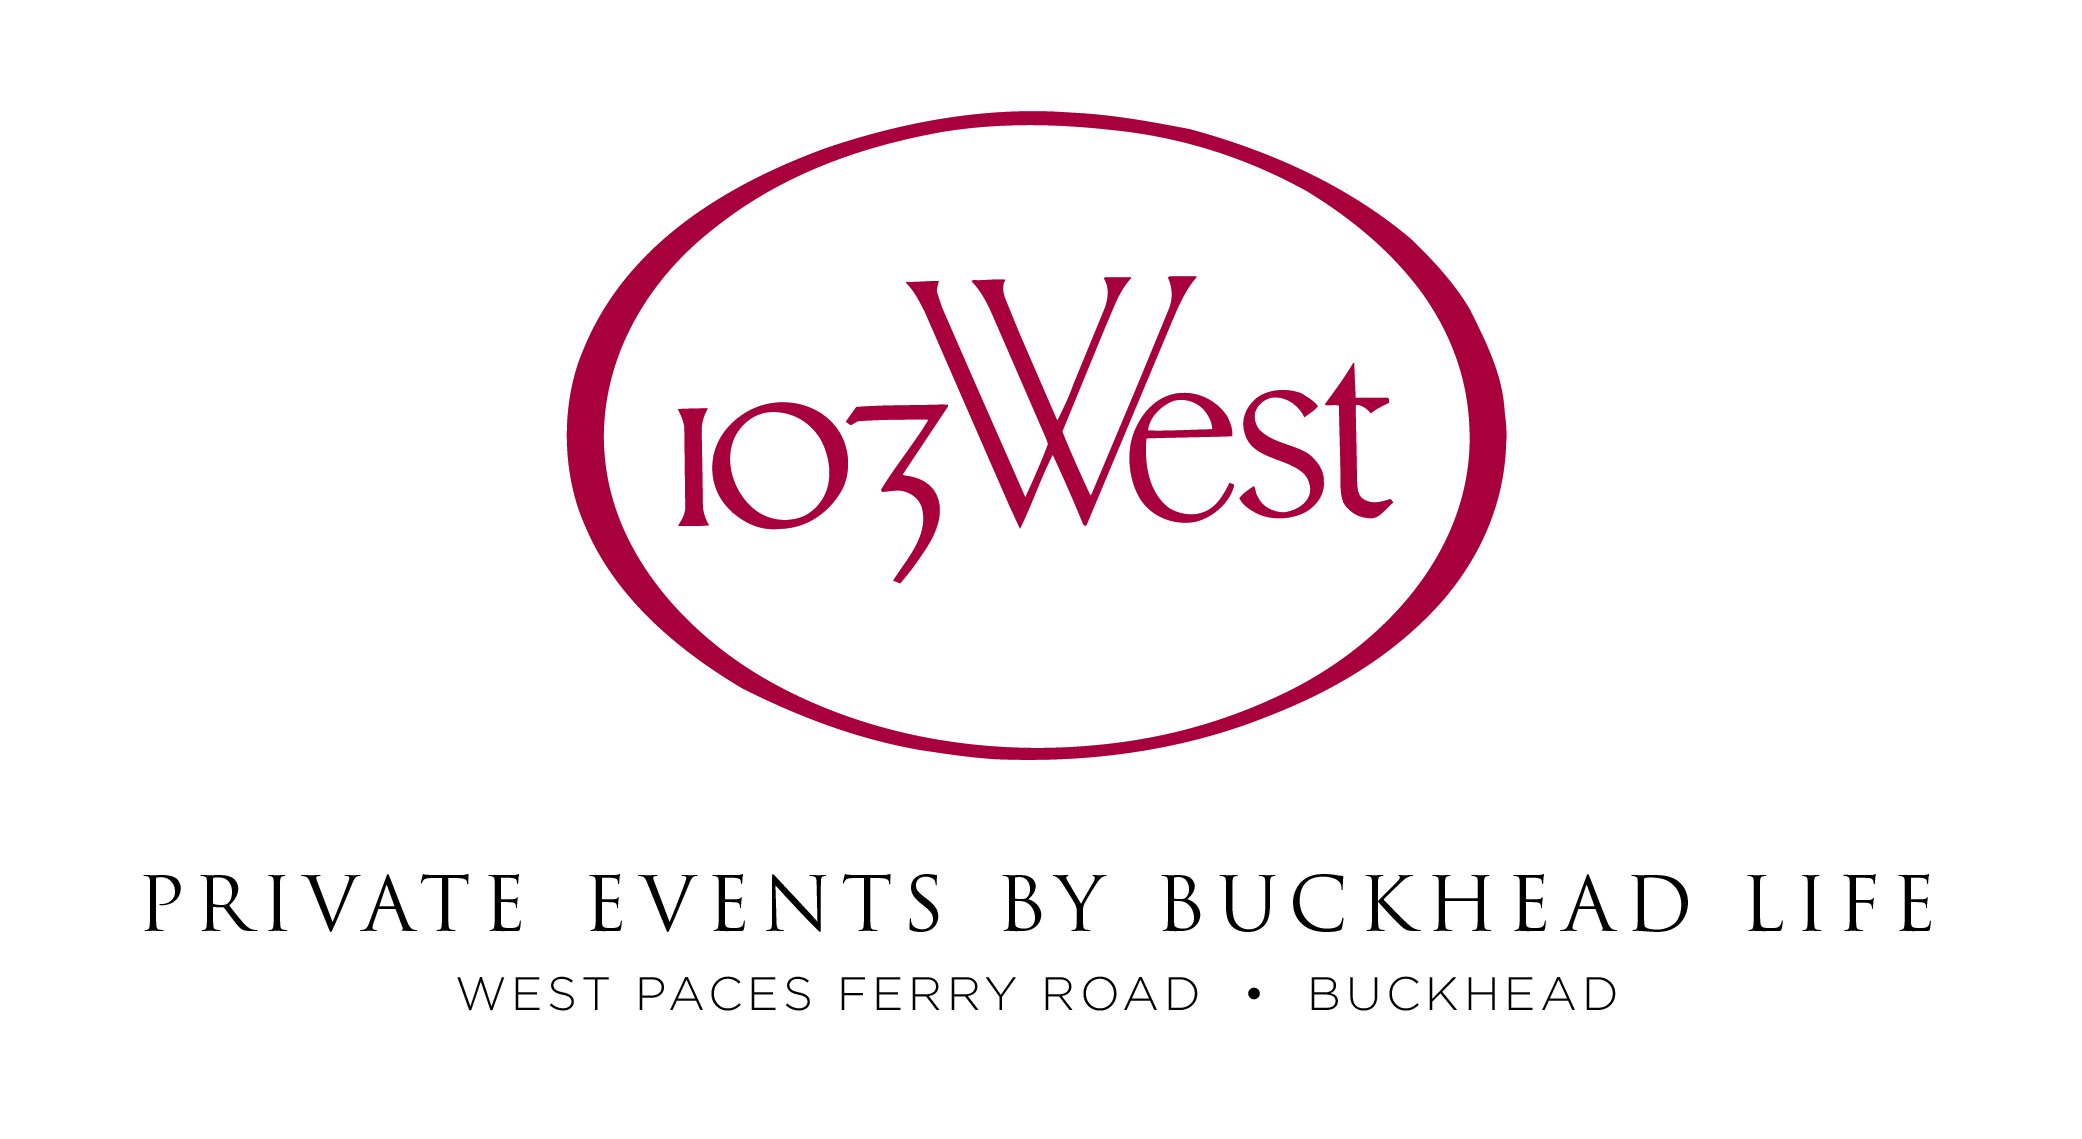 103West logo-PrivateEvents-2018.jpg